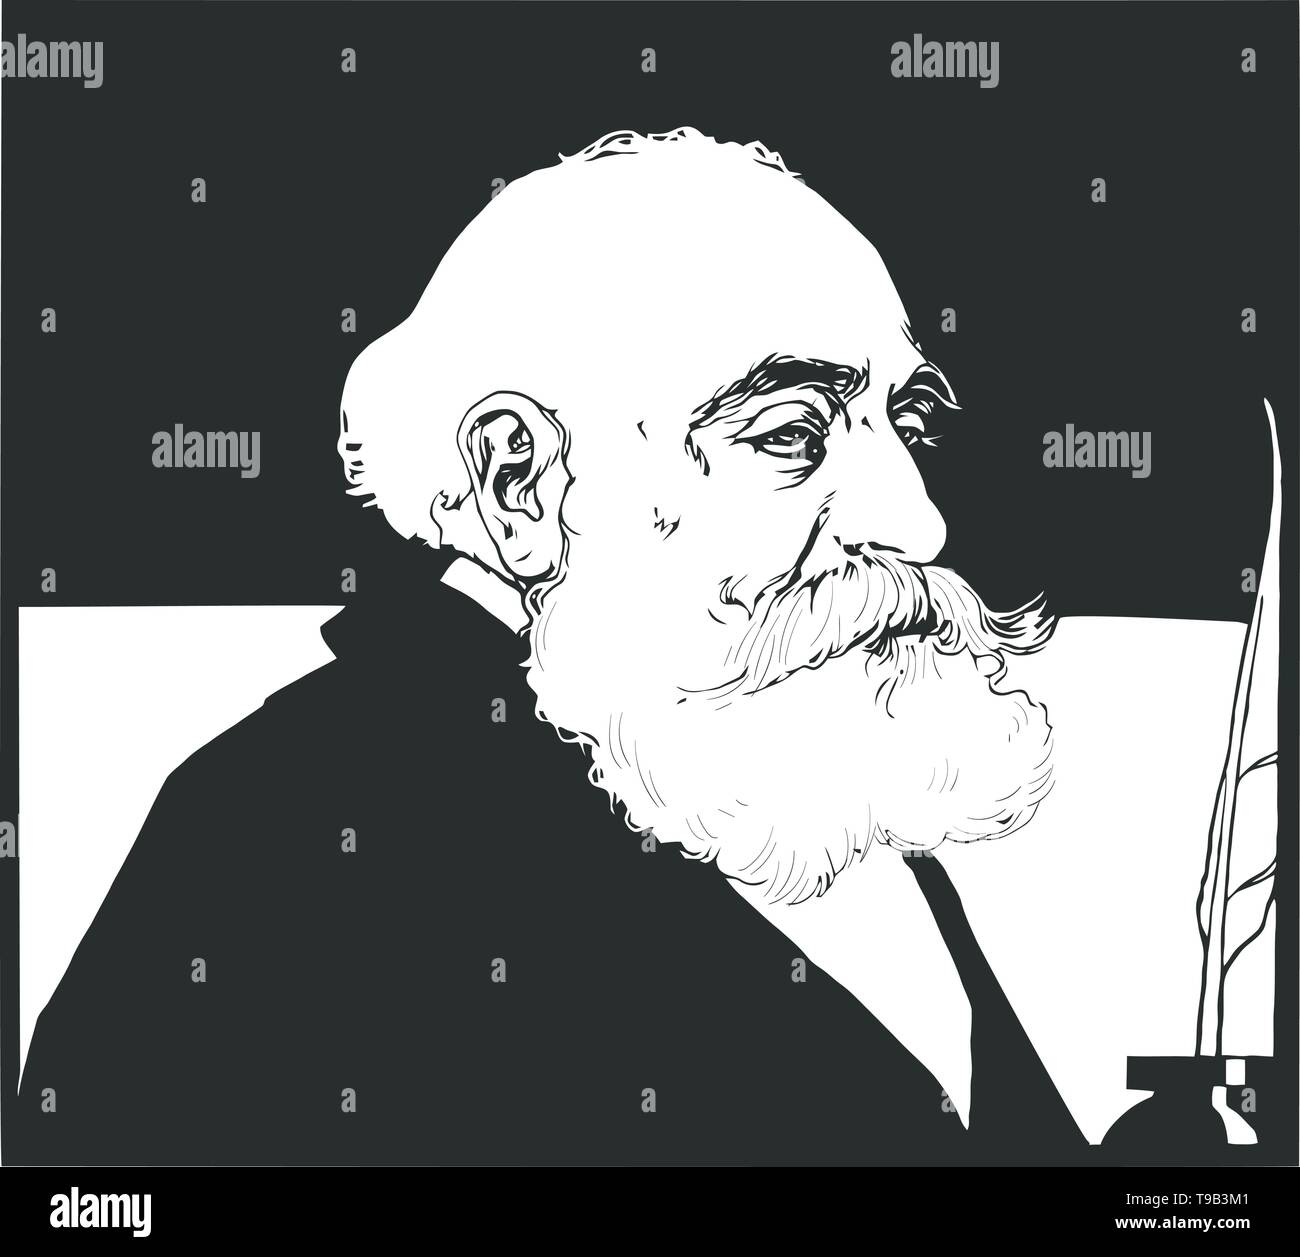 Max Simon Nordau, was a Zionist leader, physician, author, and social critic. - Stock Vector